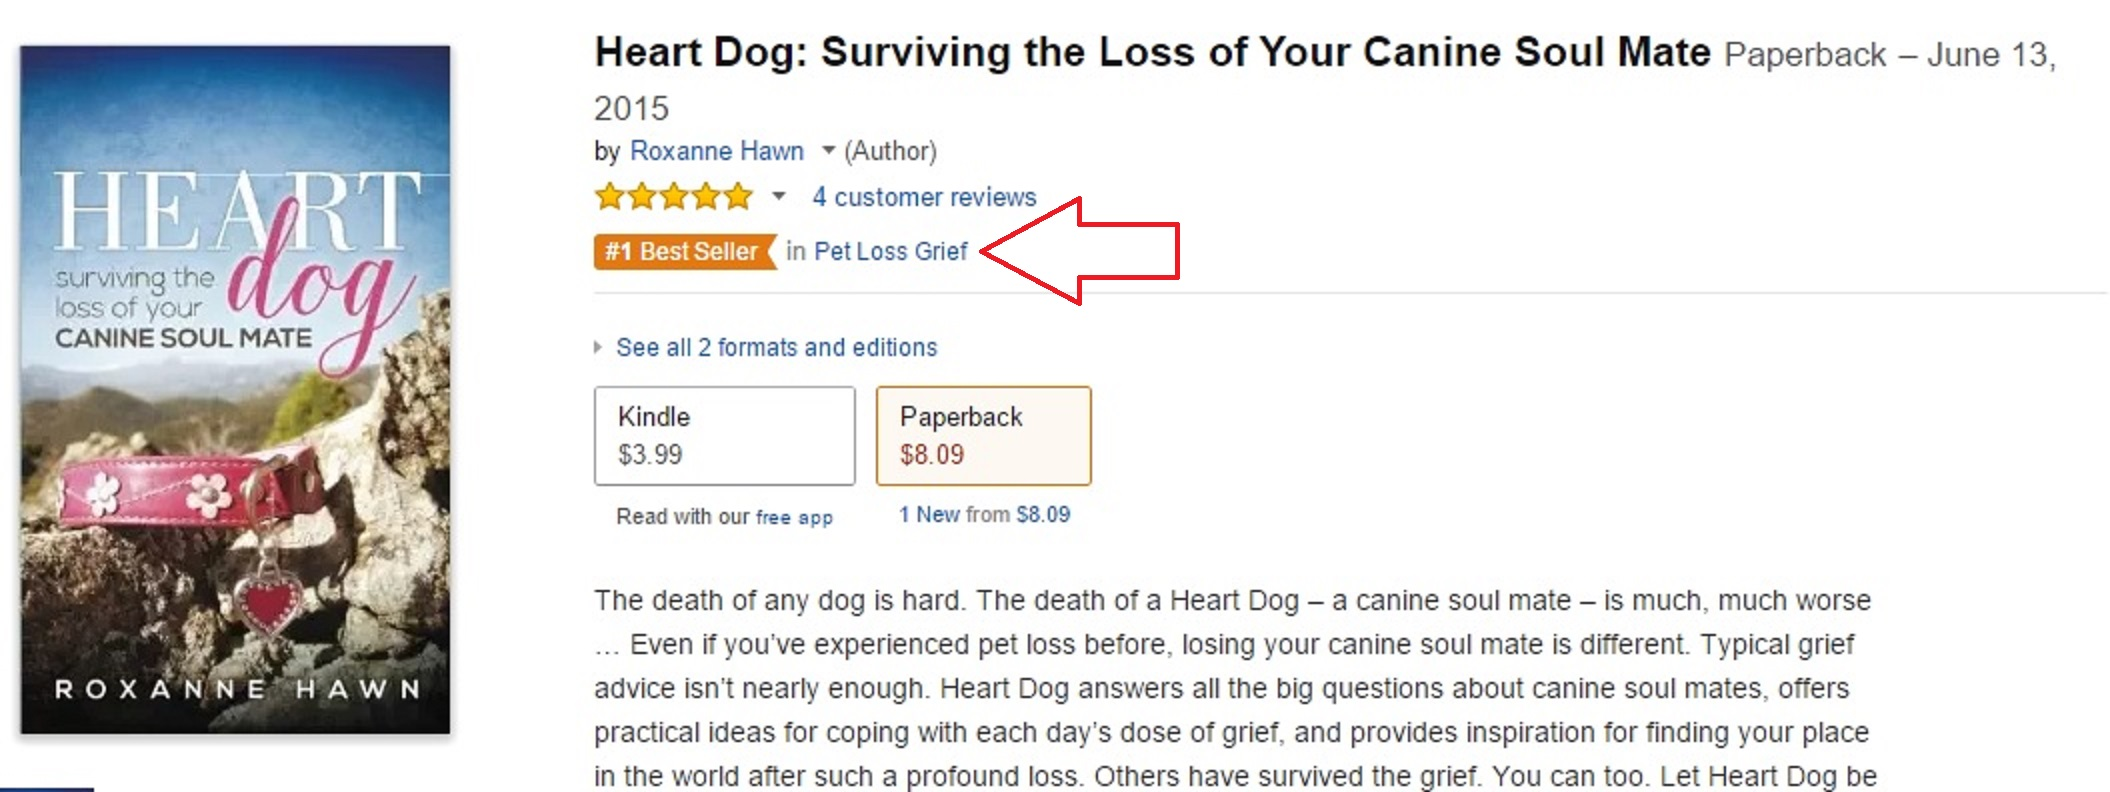 heart dog surviving the loss of your canine soul mate by roxanne hawn amazon best seller